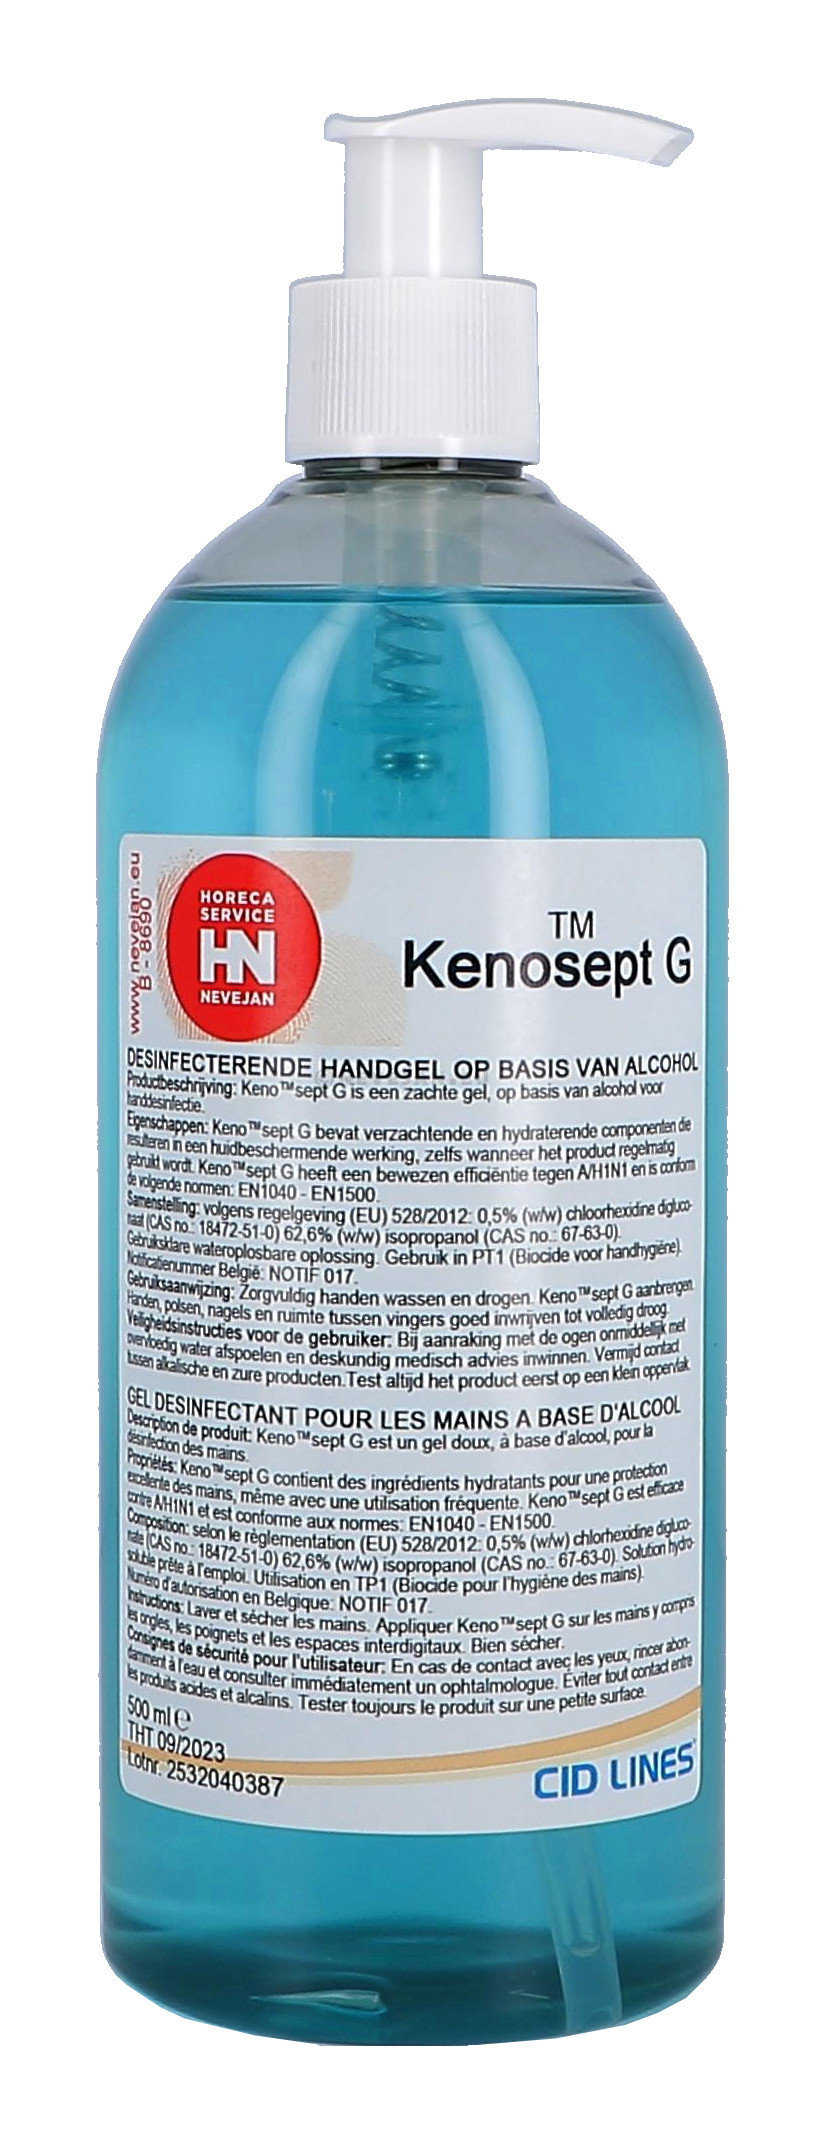 Kenosept-G 500ml alcoholic gel for handhygiene Cid Lines (Hygiëneproducten)